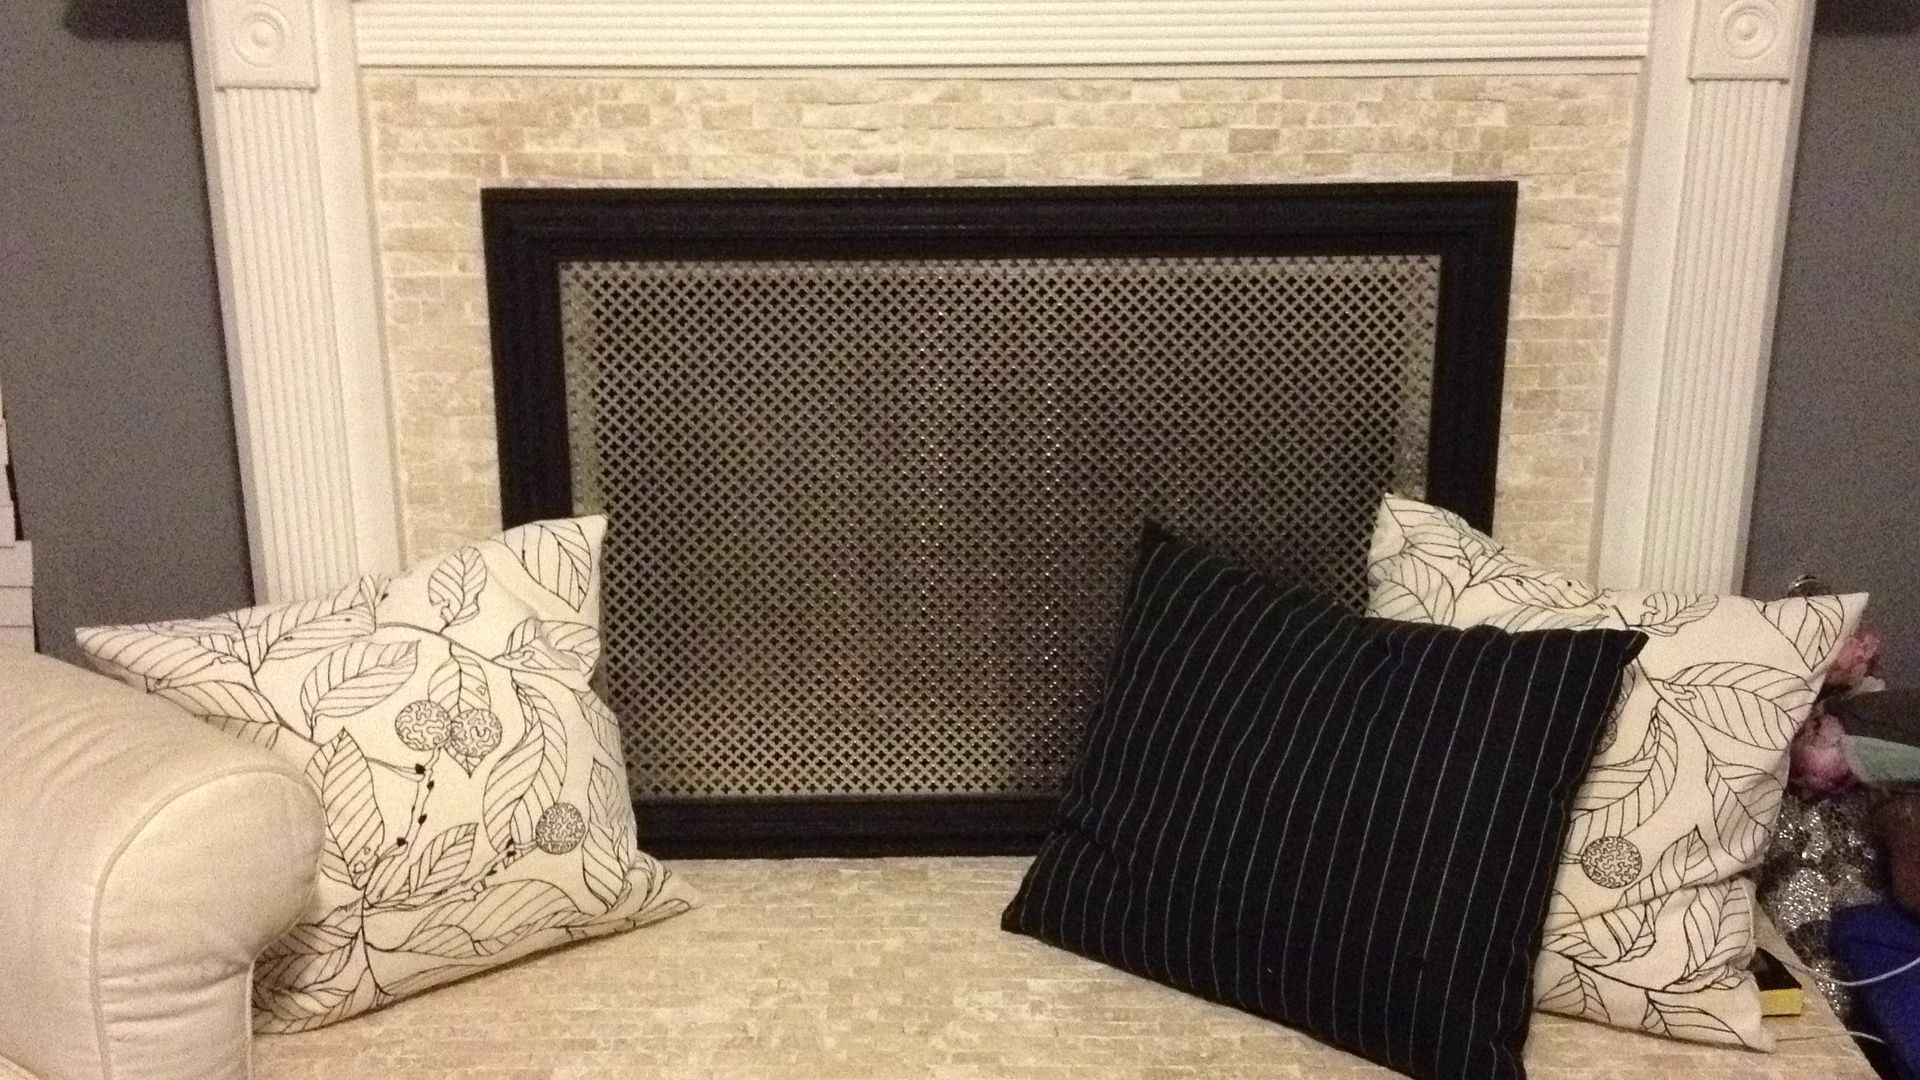 Fireplace Screen Home Depot Diy Decorative Fireplace Screen Drop A Perforated Aluminum Sheet